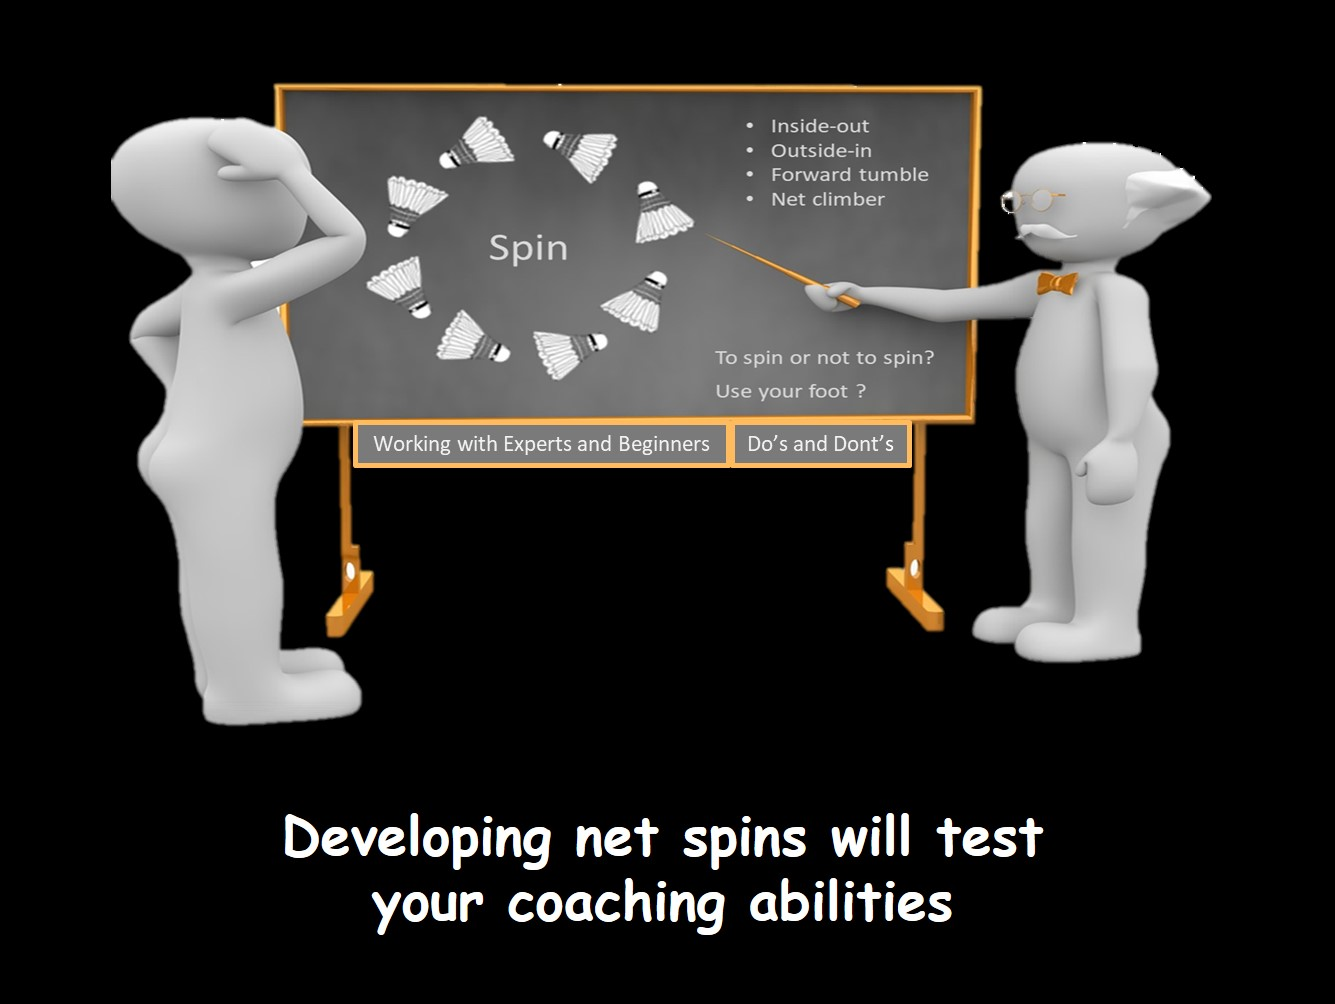 Coaches guide to net spins